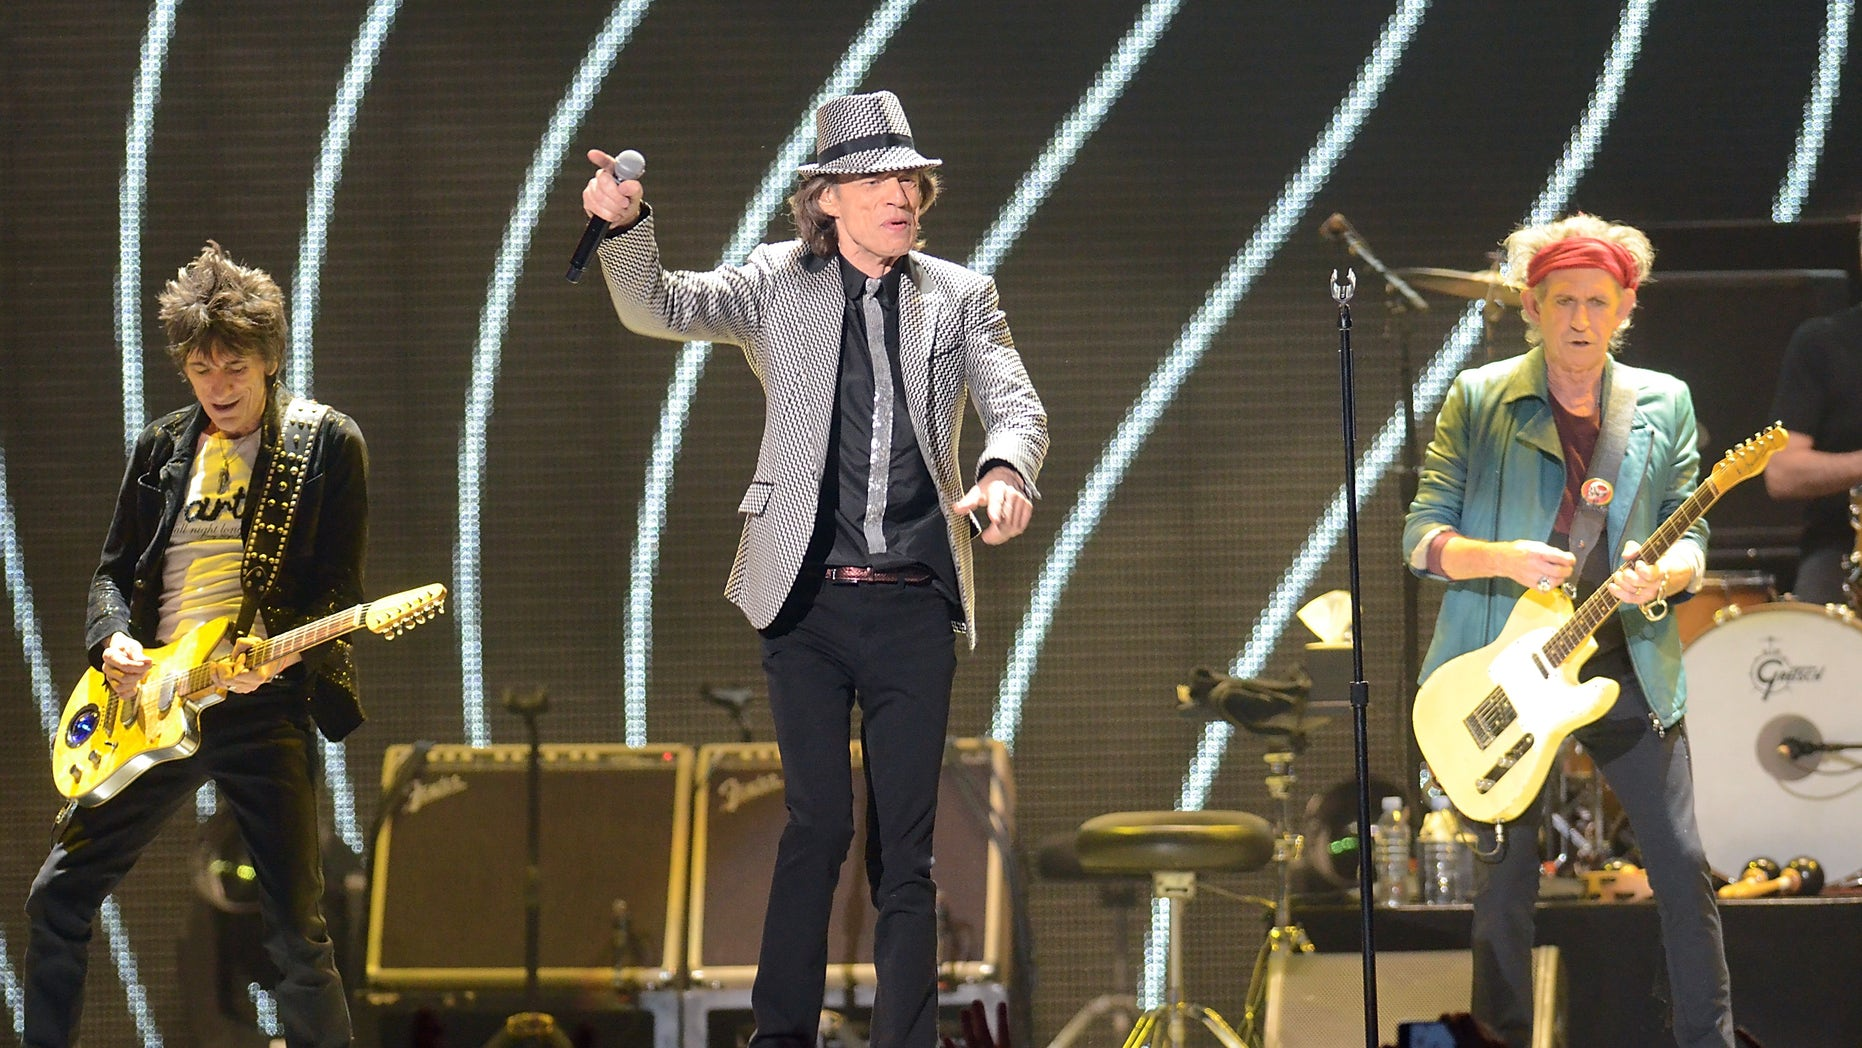 Dec. 15, 2012: In this file photo, singer Mick Jagger, center, guitarists Ronnie Wood, left, and Keith Richards, of The Rolling Stones perform live at the Prudential Center in Newark, N.J.